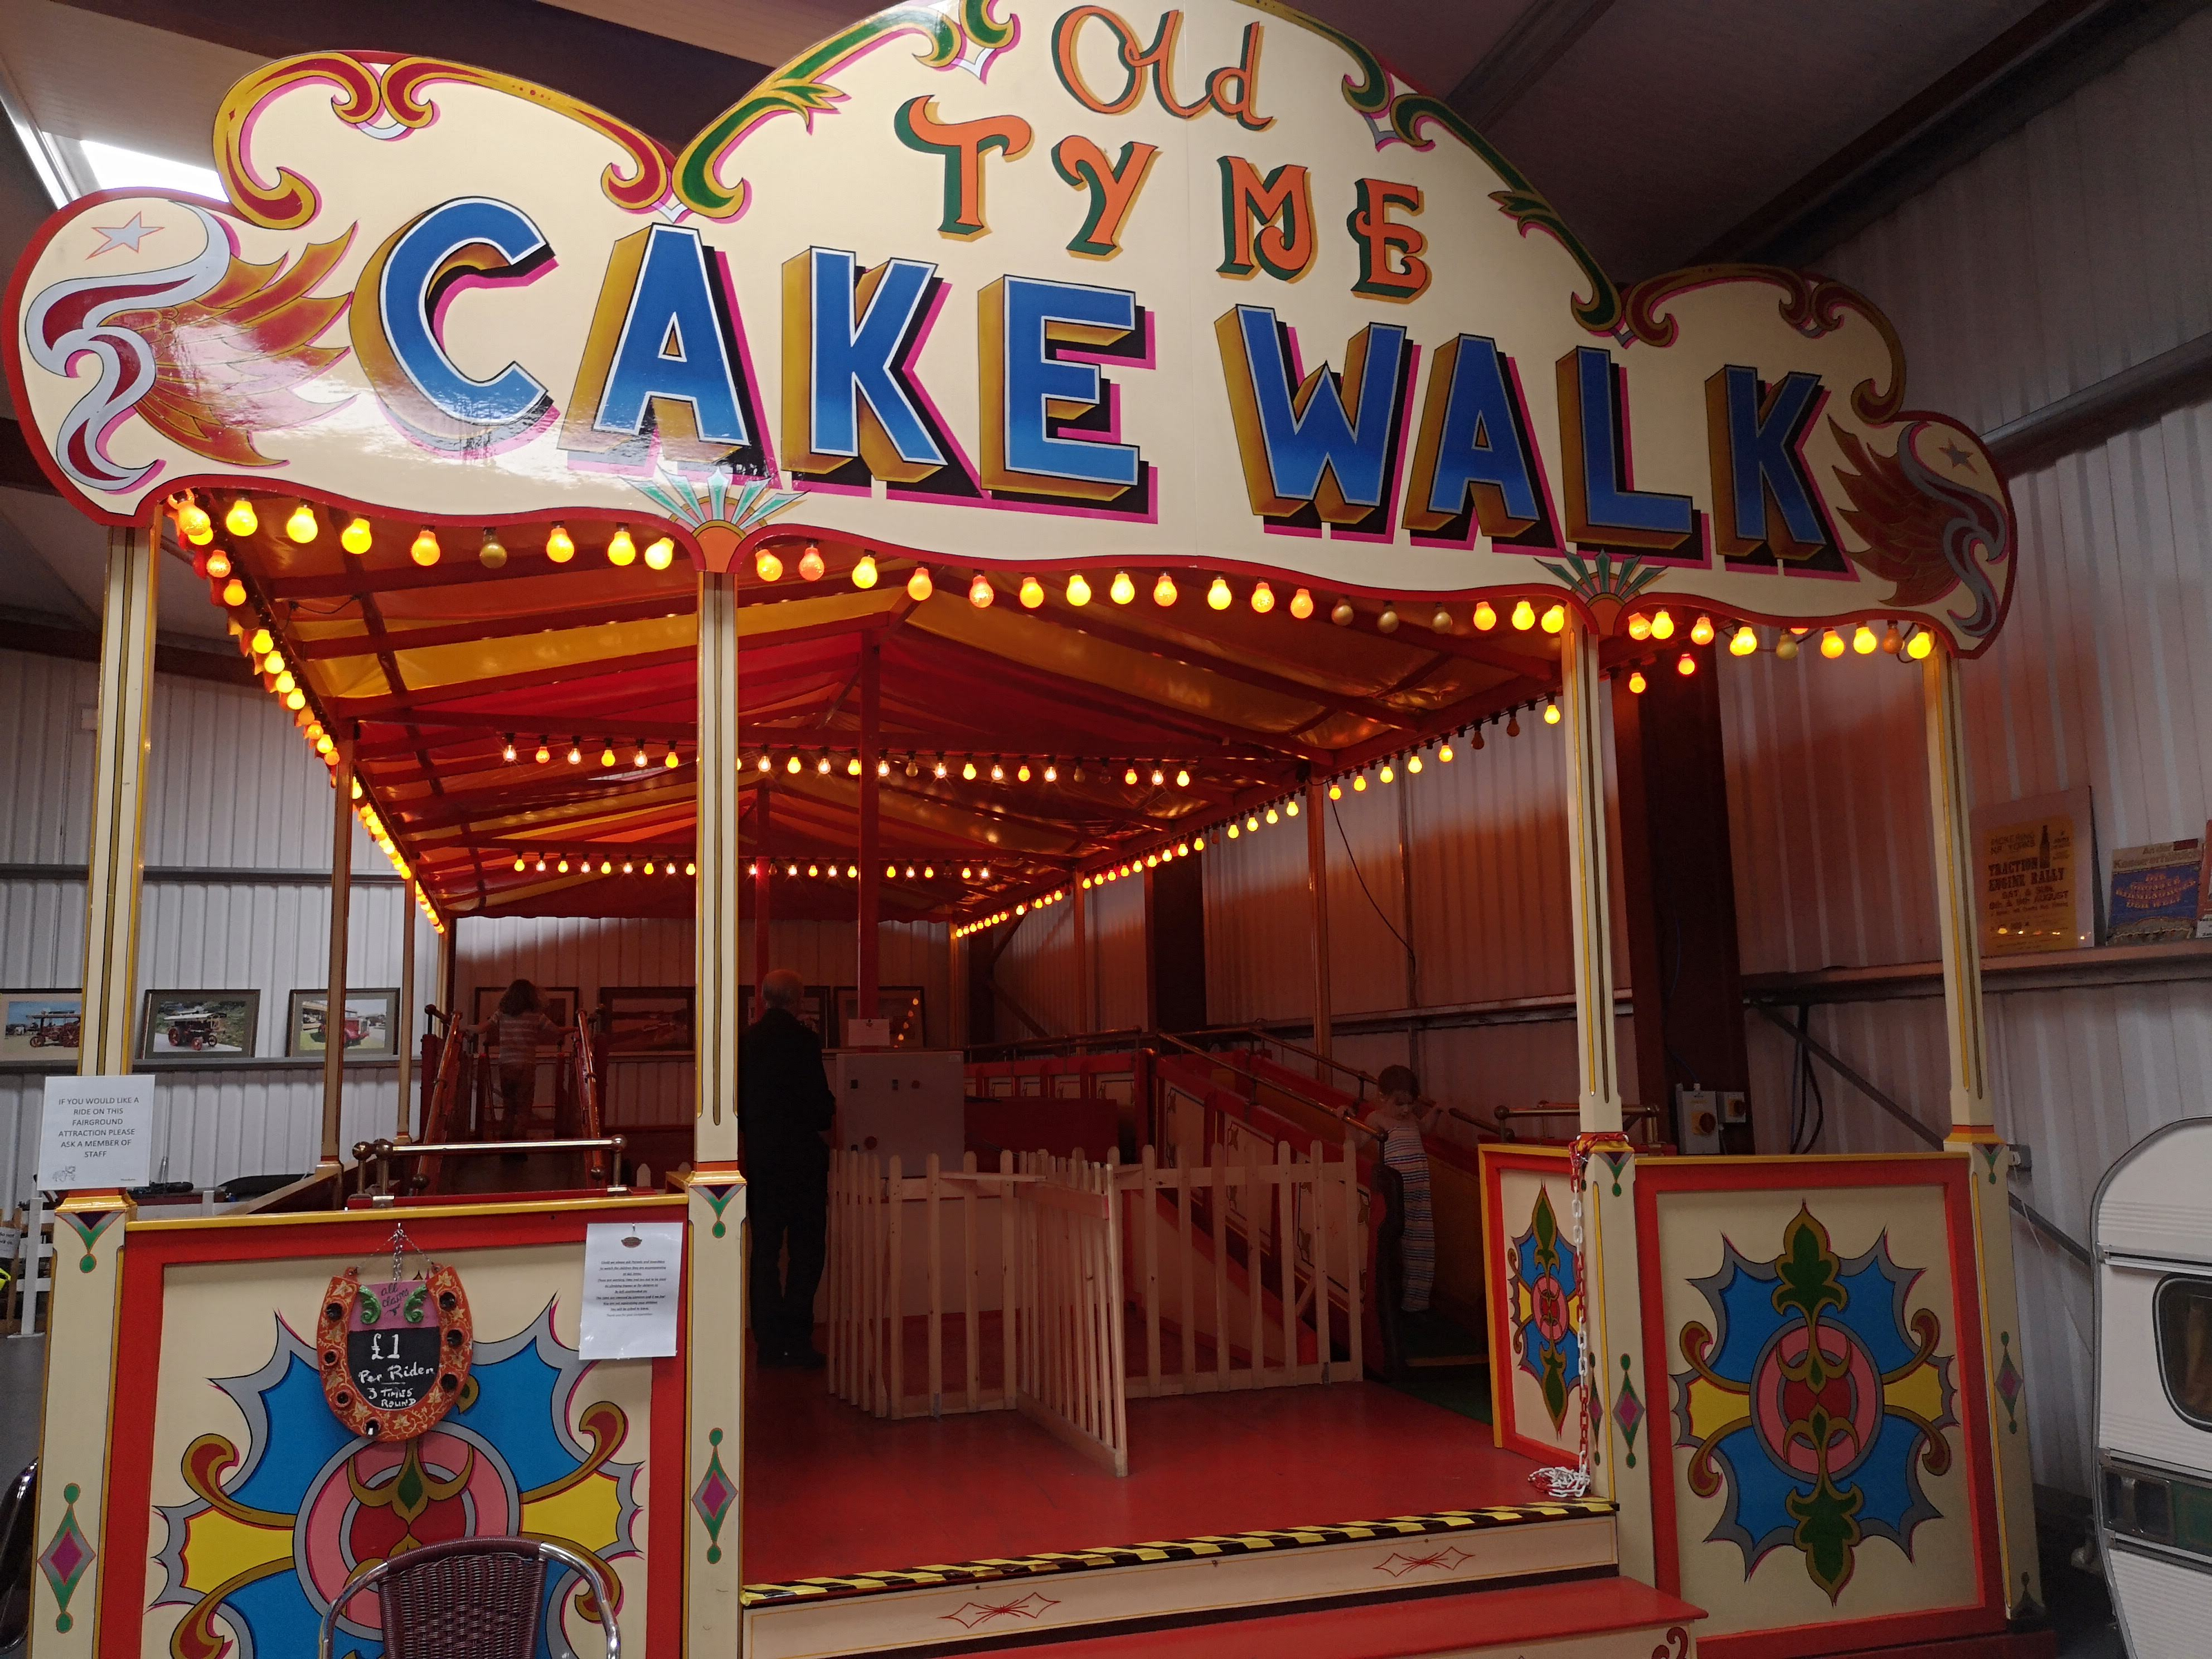 An old fair ground ride where there are moving walkways. 2 girls are walking around it